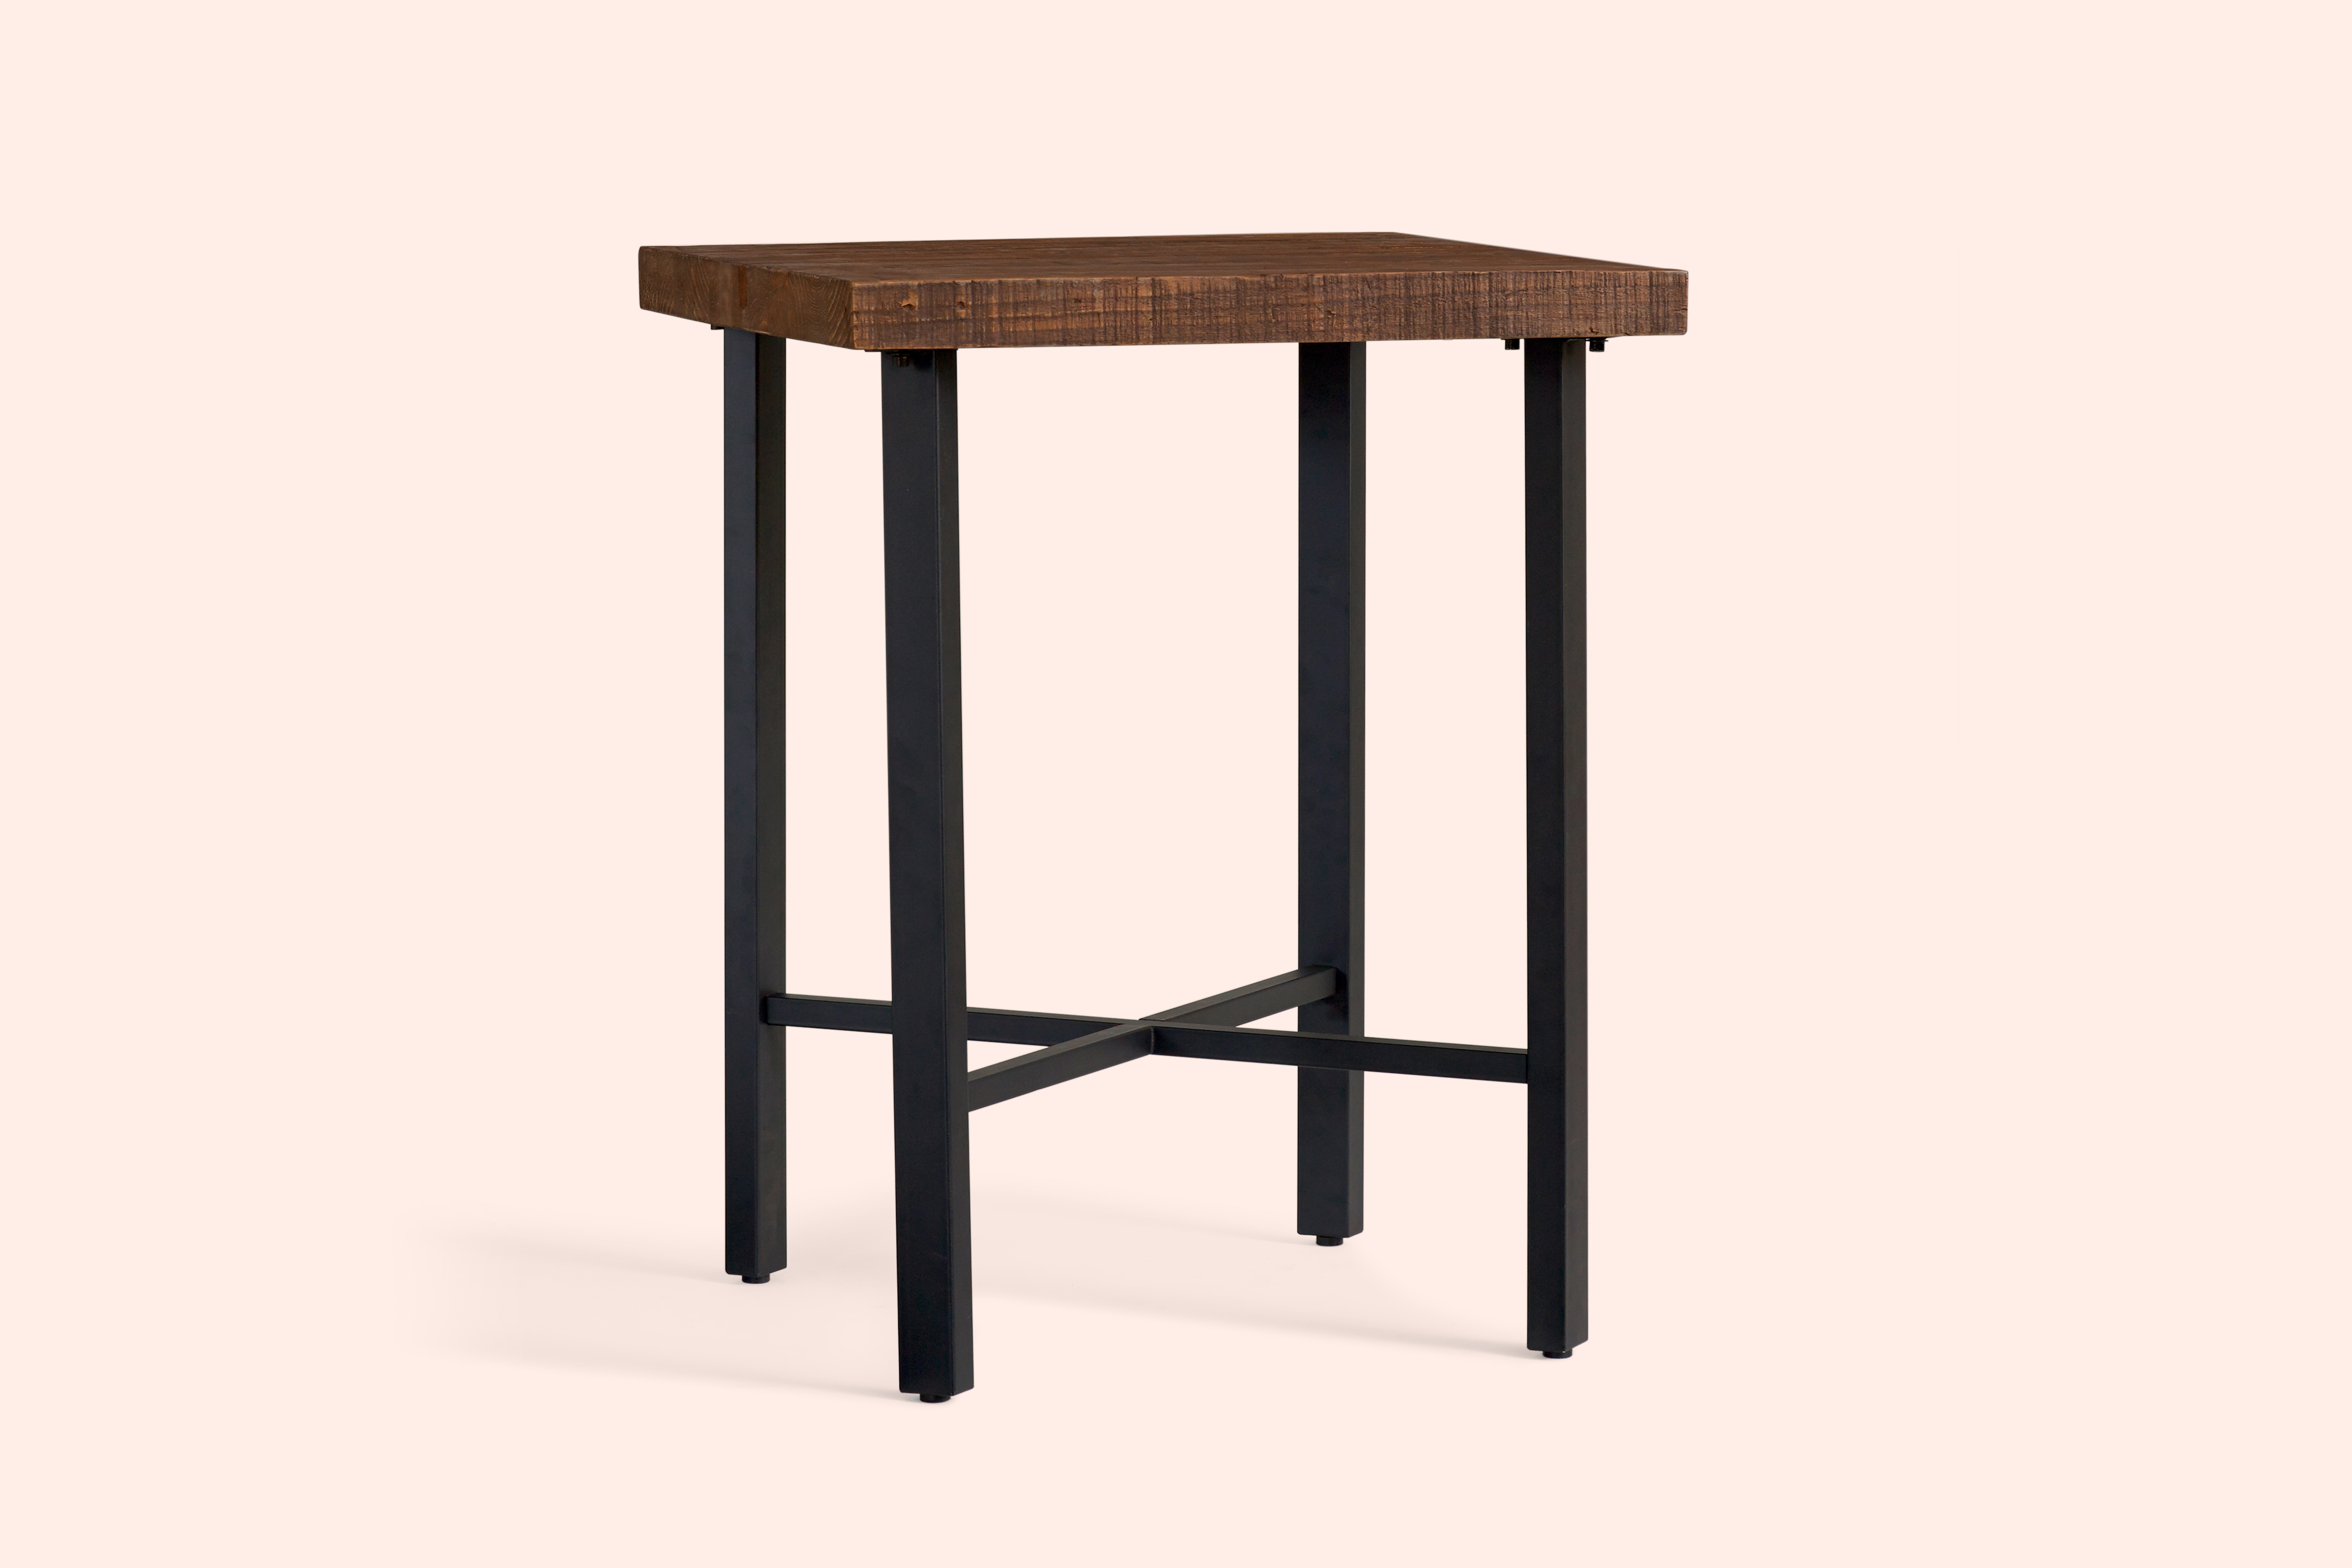 170629-online-furniture-table